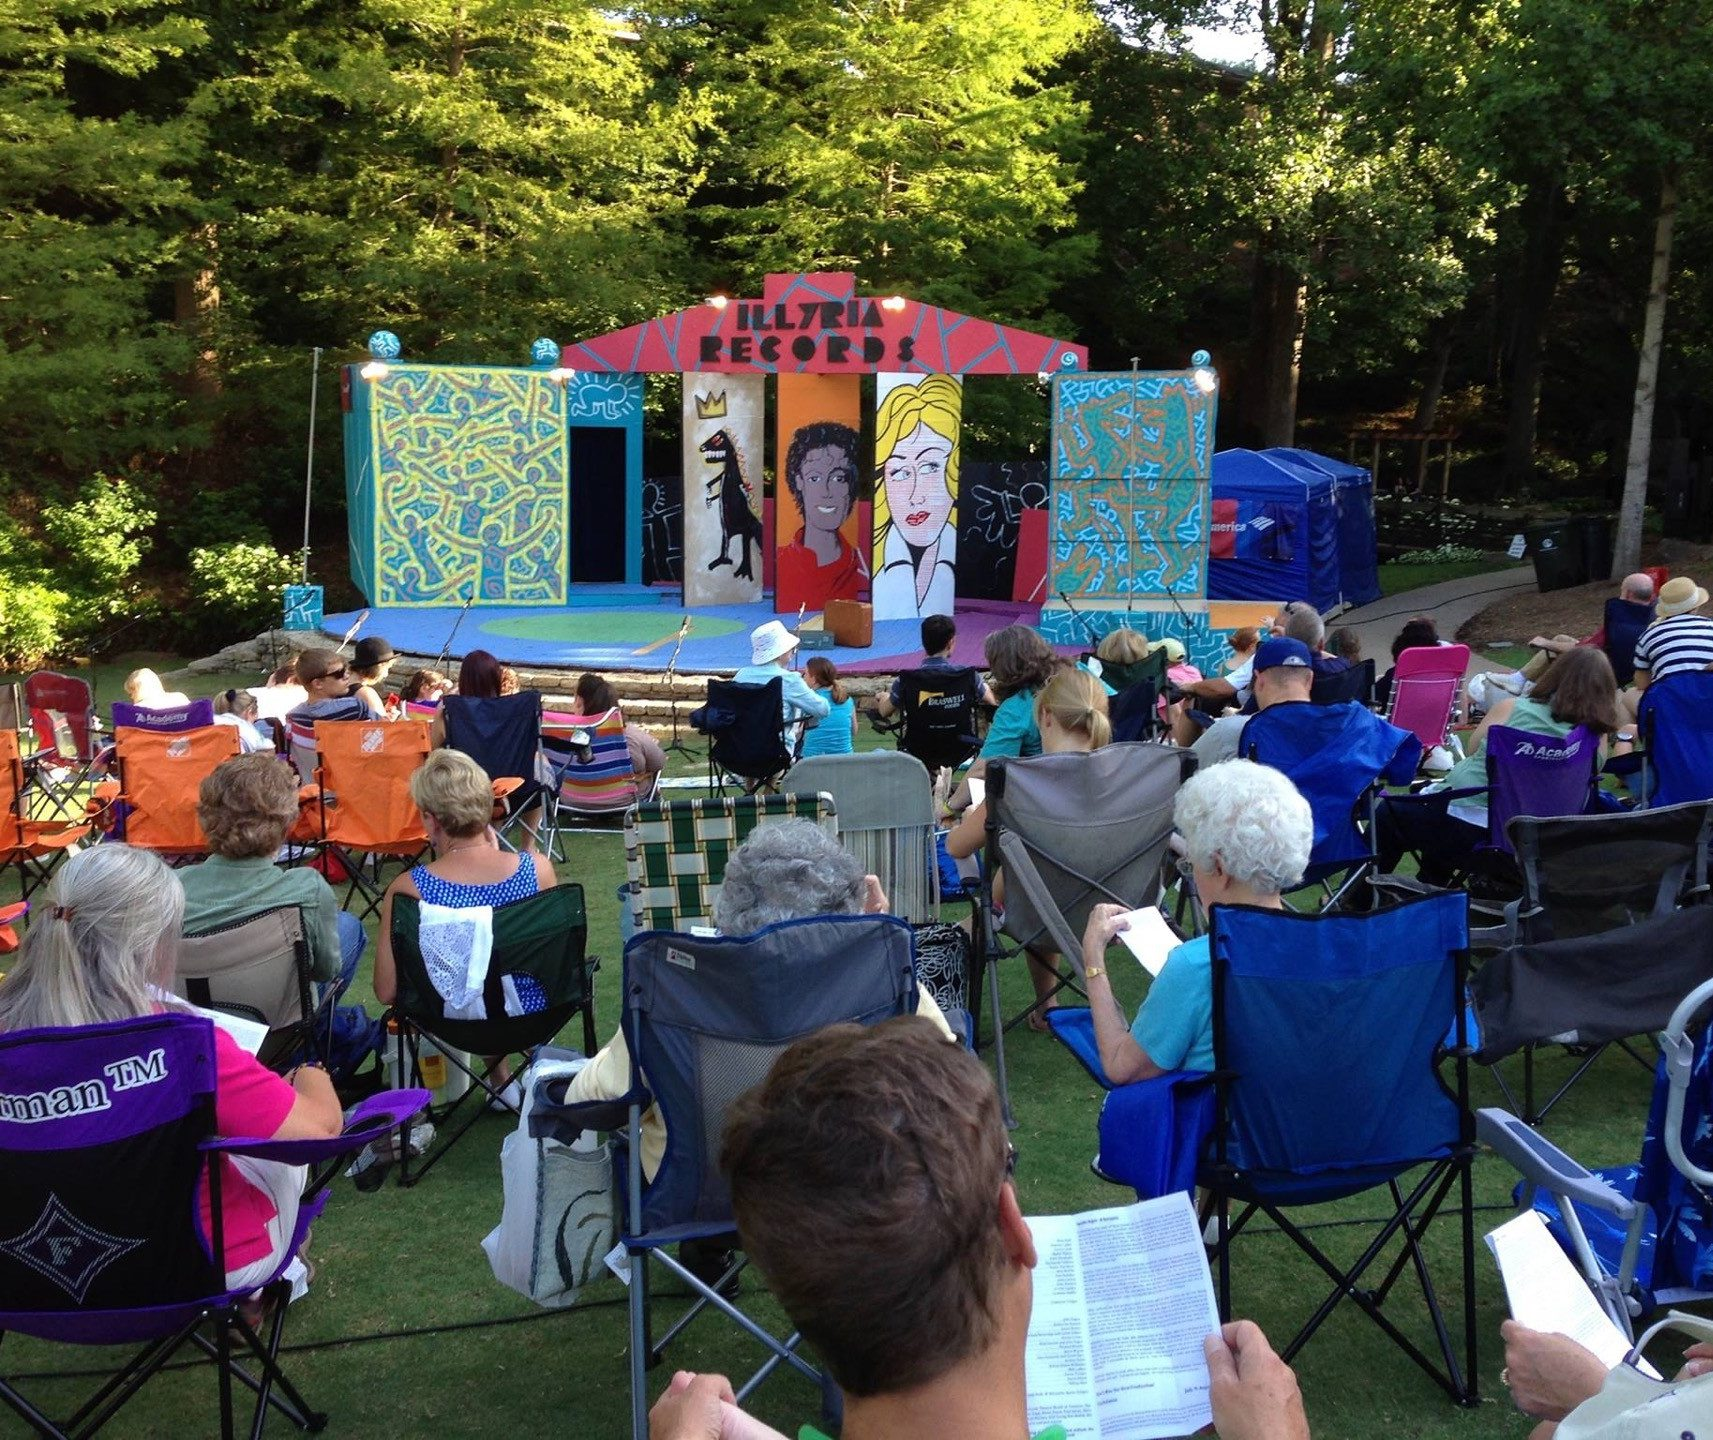 Shakespeare Festival Outdoor: The 22nd Annual Upstate Shakespeare Festival